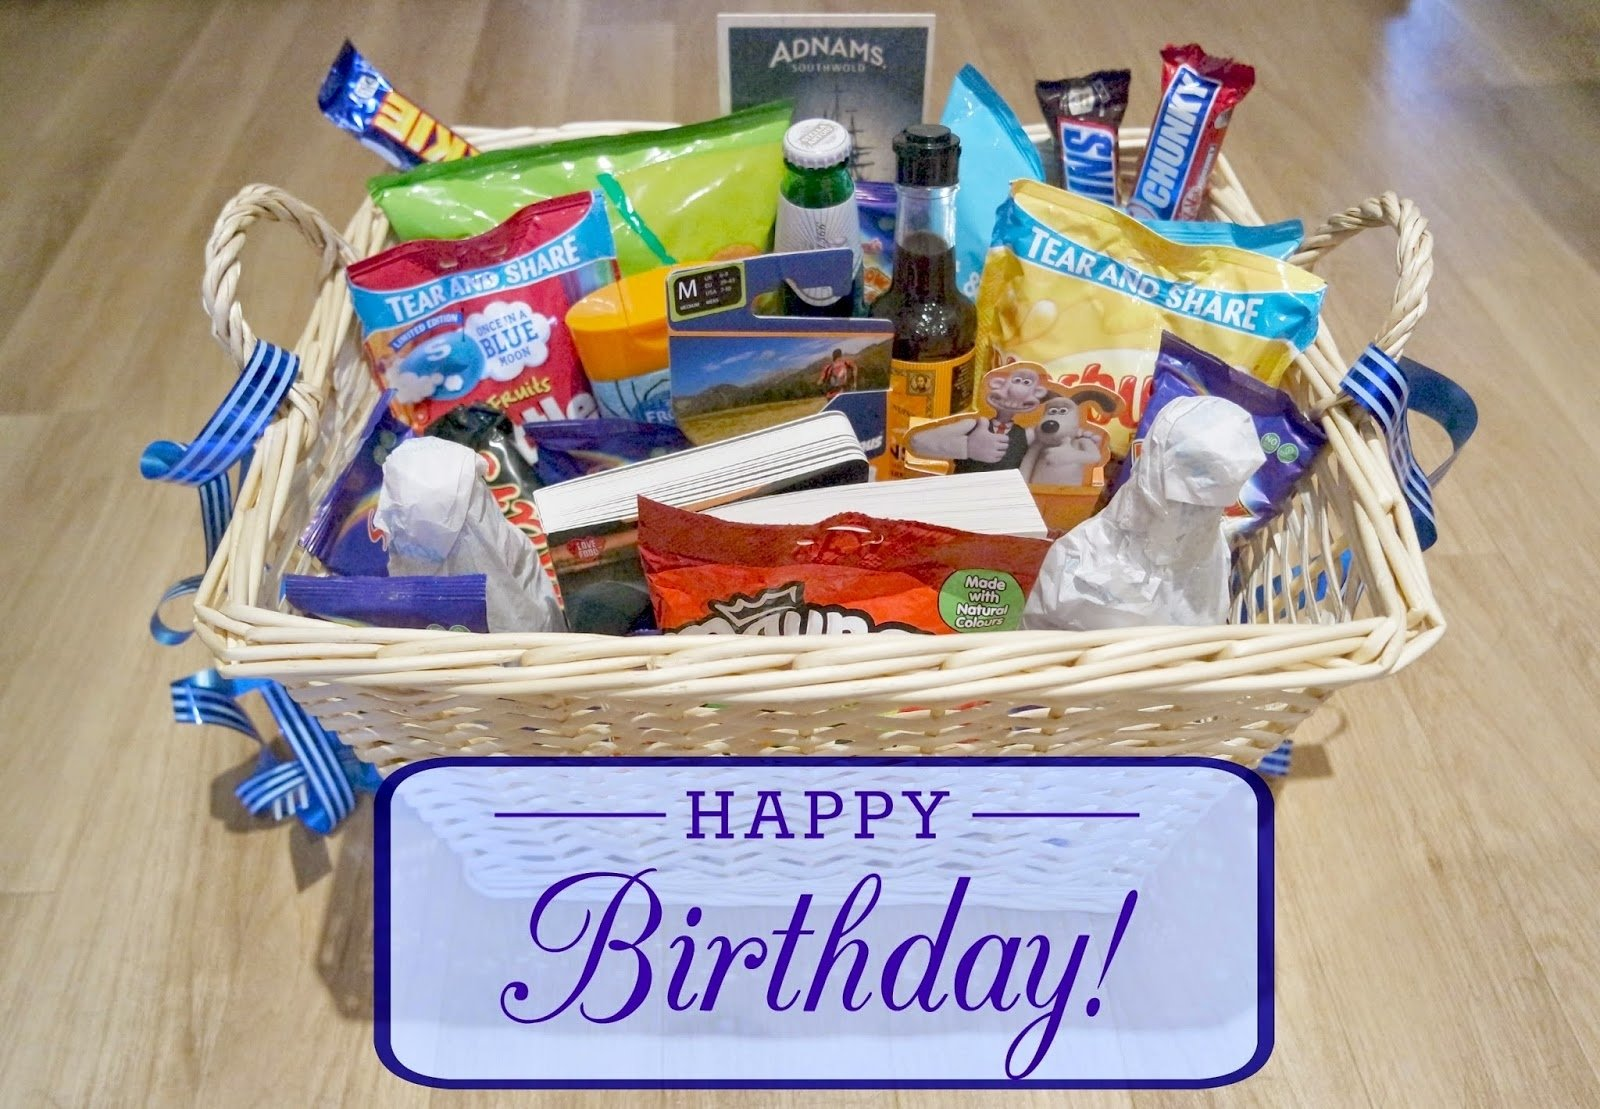 10 Beautiful Ideas For 50Th Birthday Gifts uptown peach my dads 50th birthday hamper mens gift ideas 23 2020